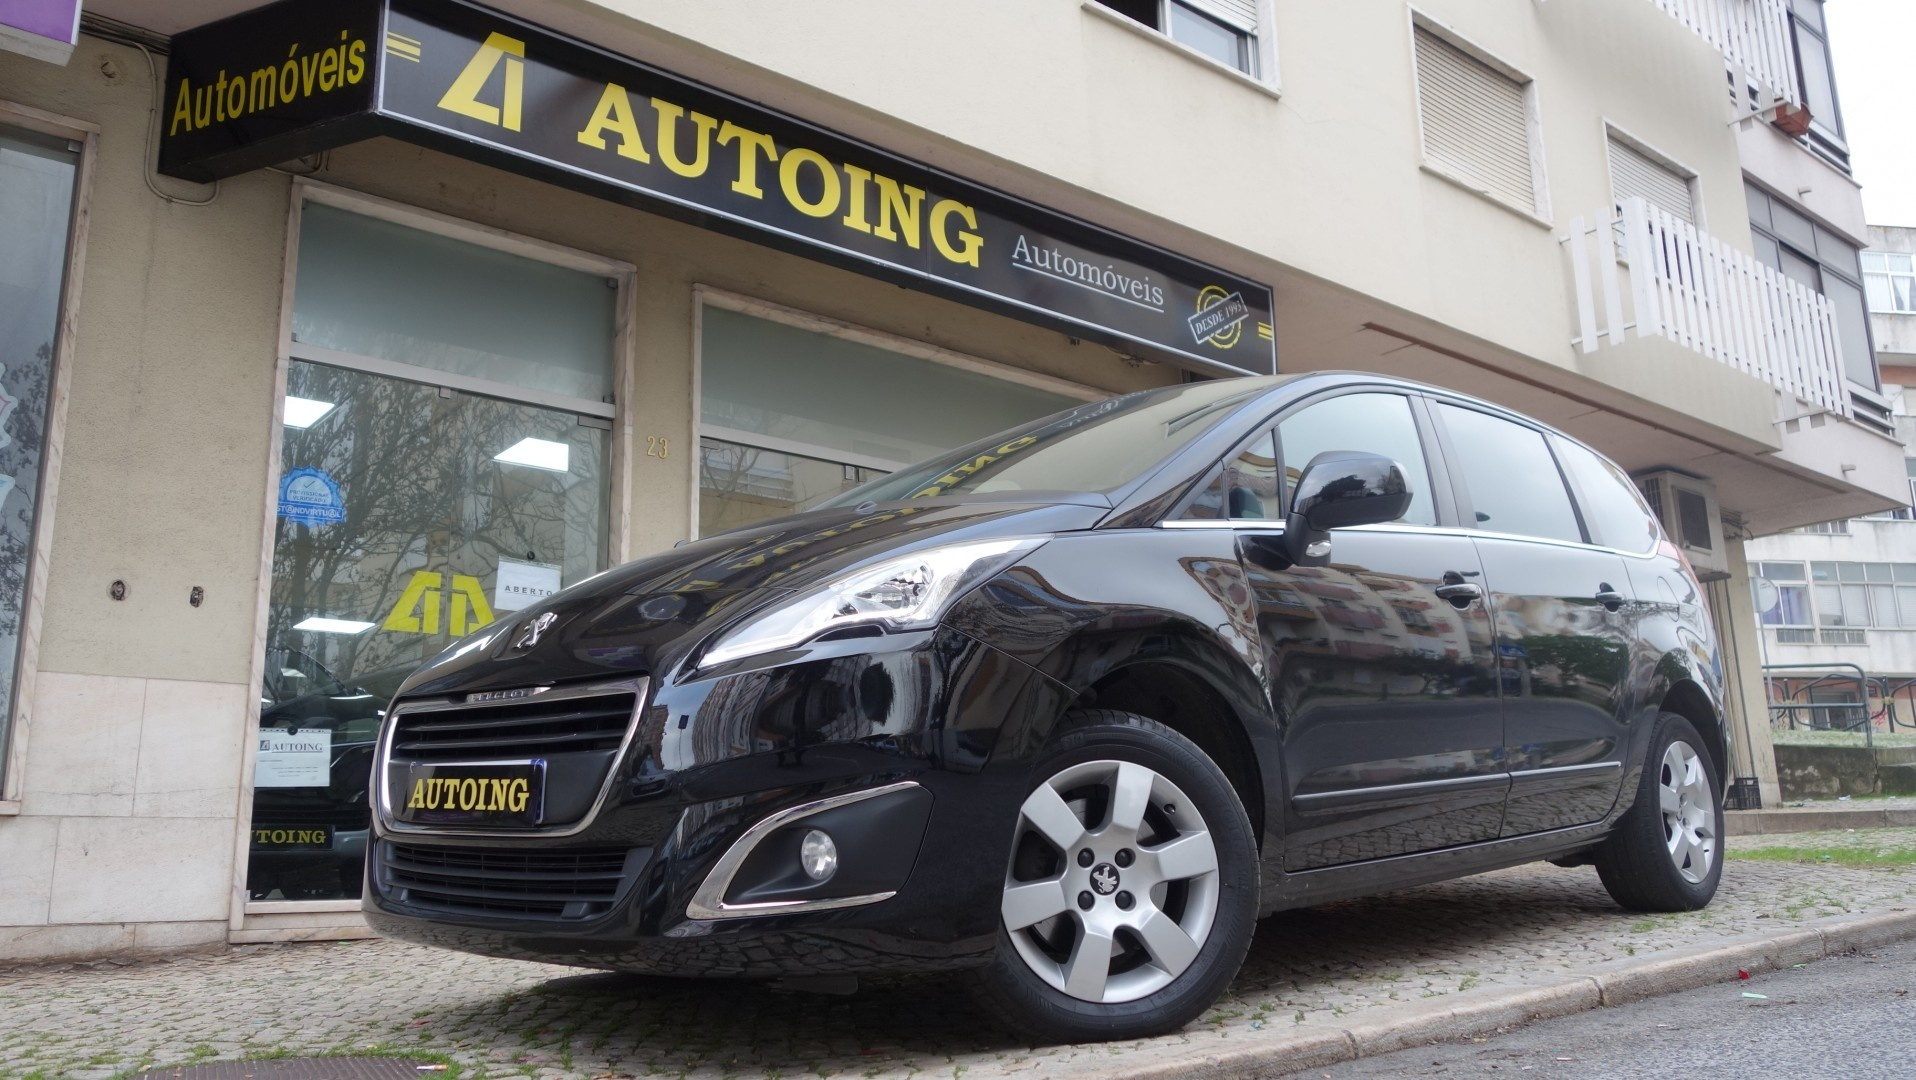 Peugeot 5008 1.6 HDI ACTIVE 120CV EAT6 7LUG.